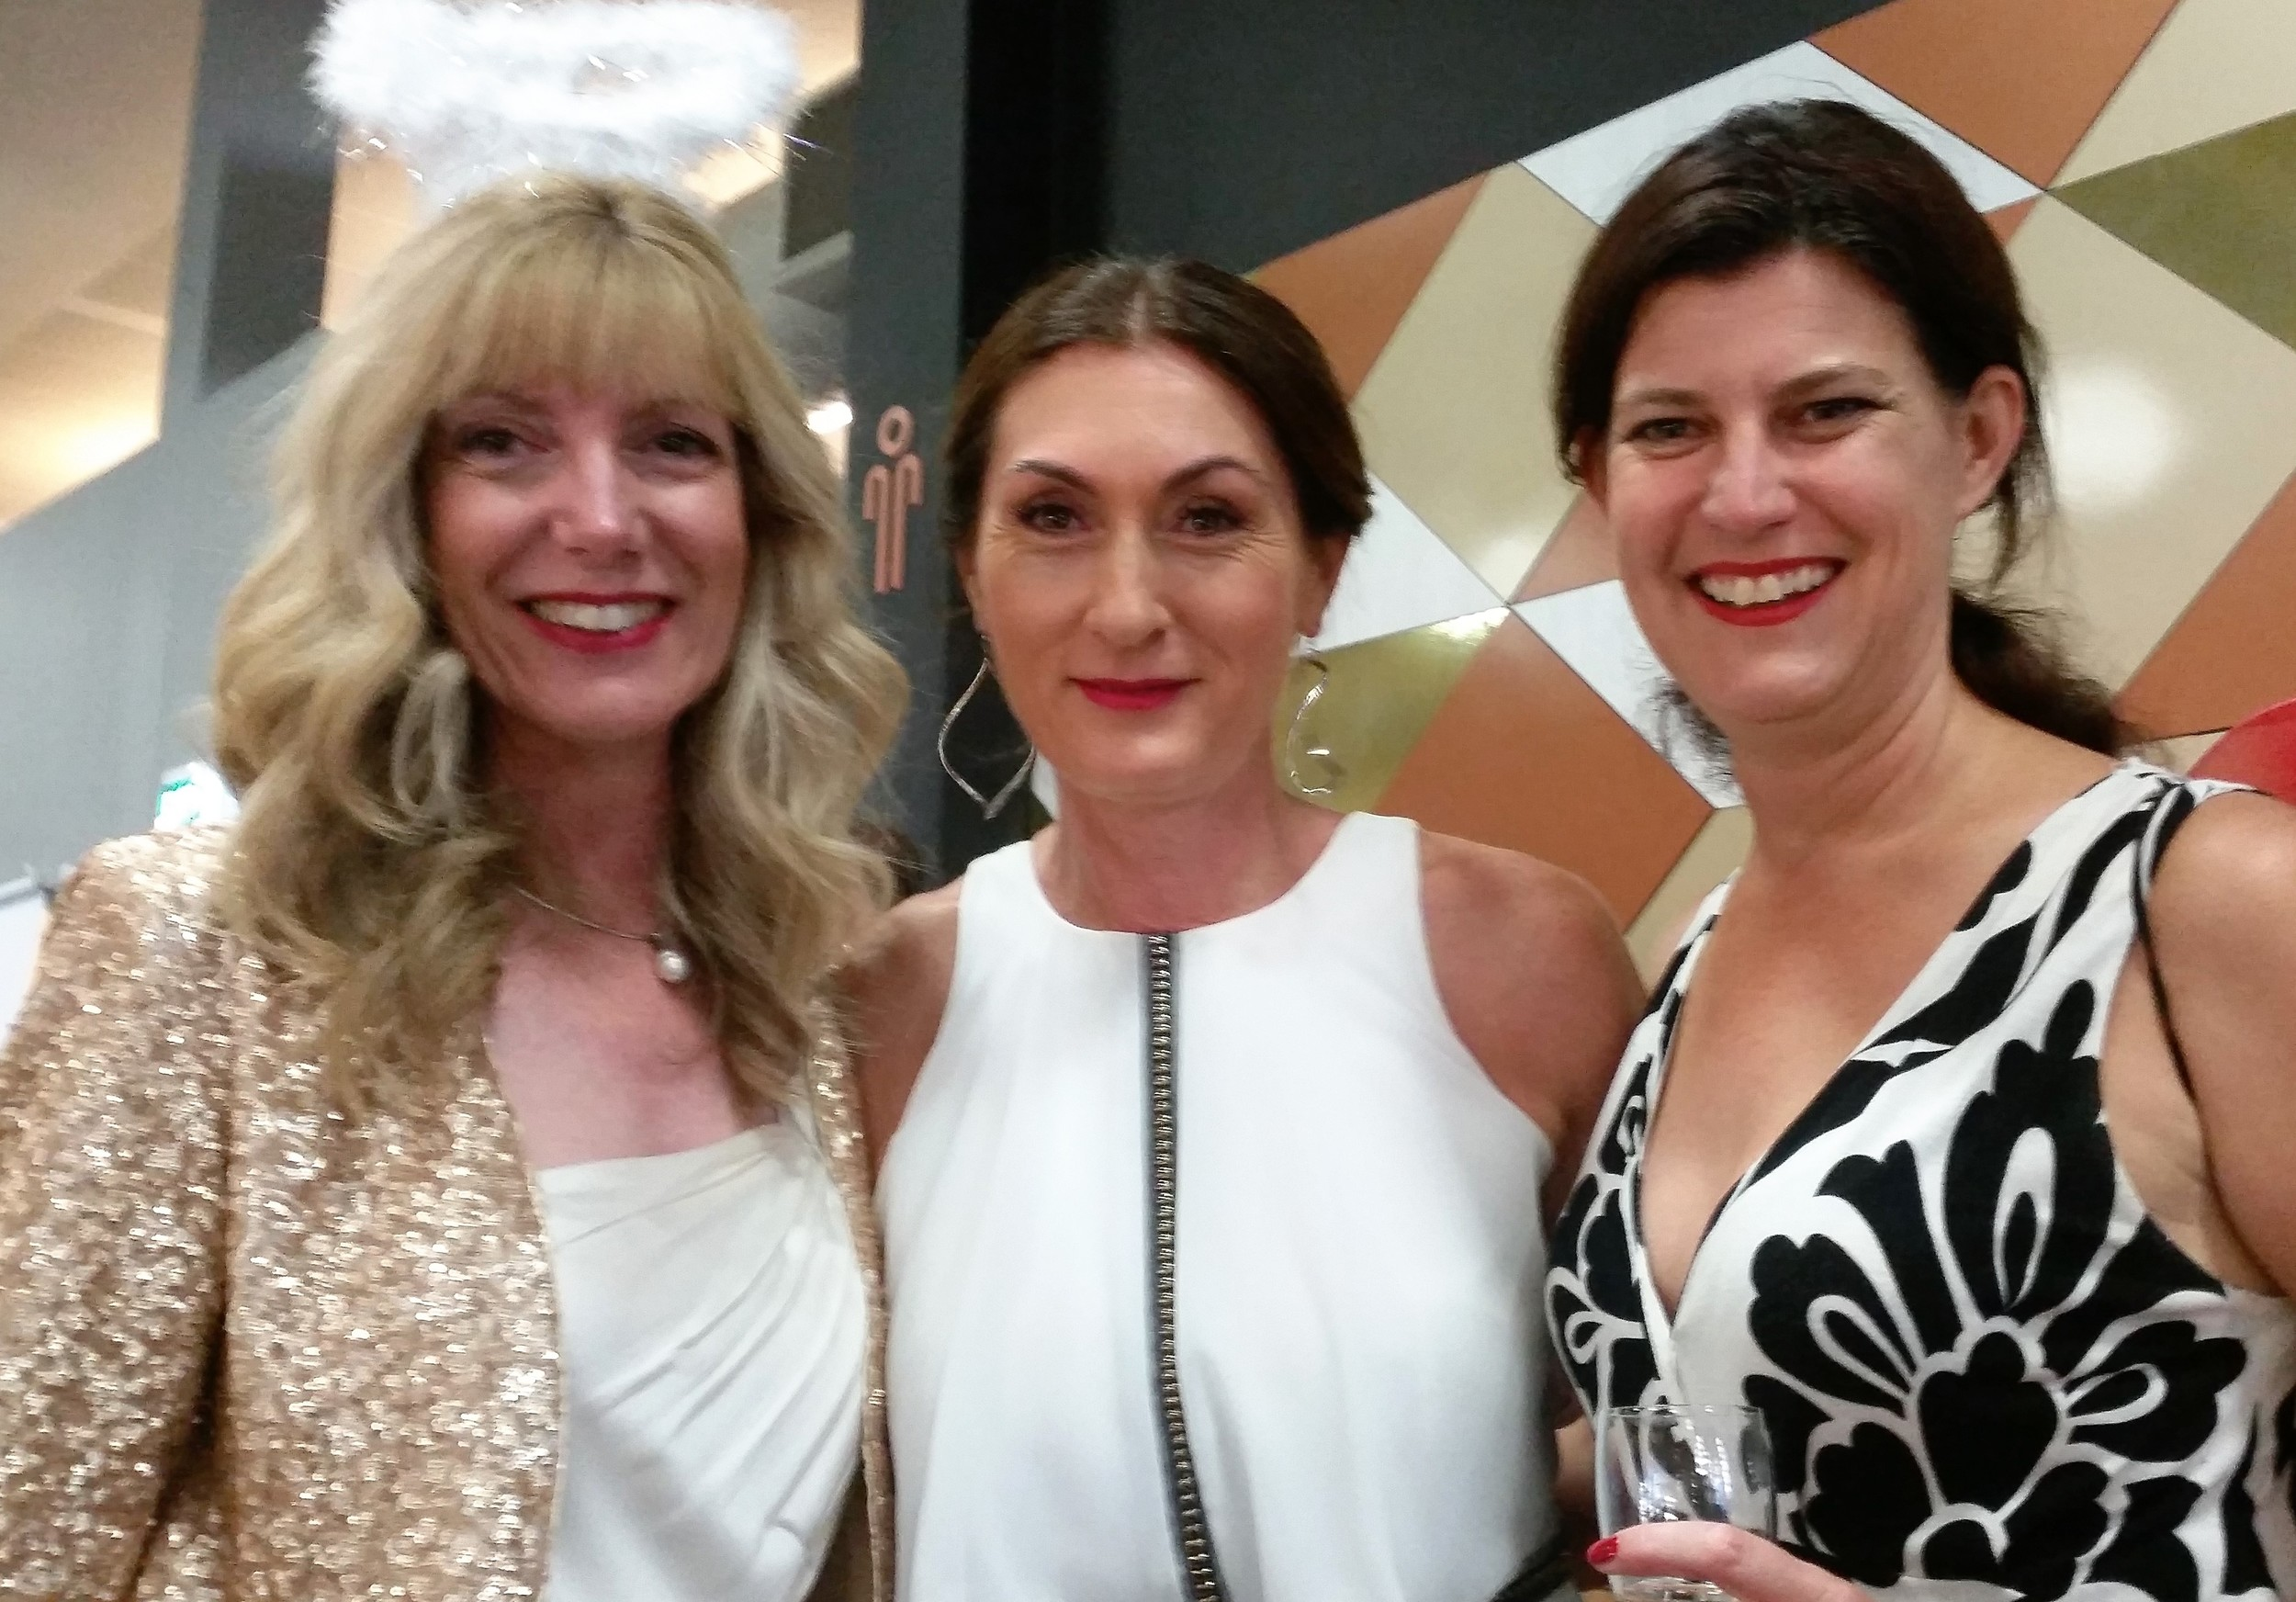 Influential 100 Awards, Perth, WA with Fleur Allen from Out of the Box and Lisa Evans from Speaking Savvy